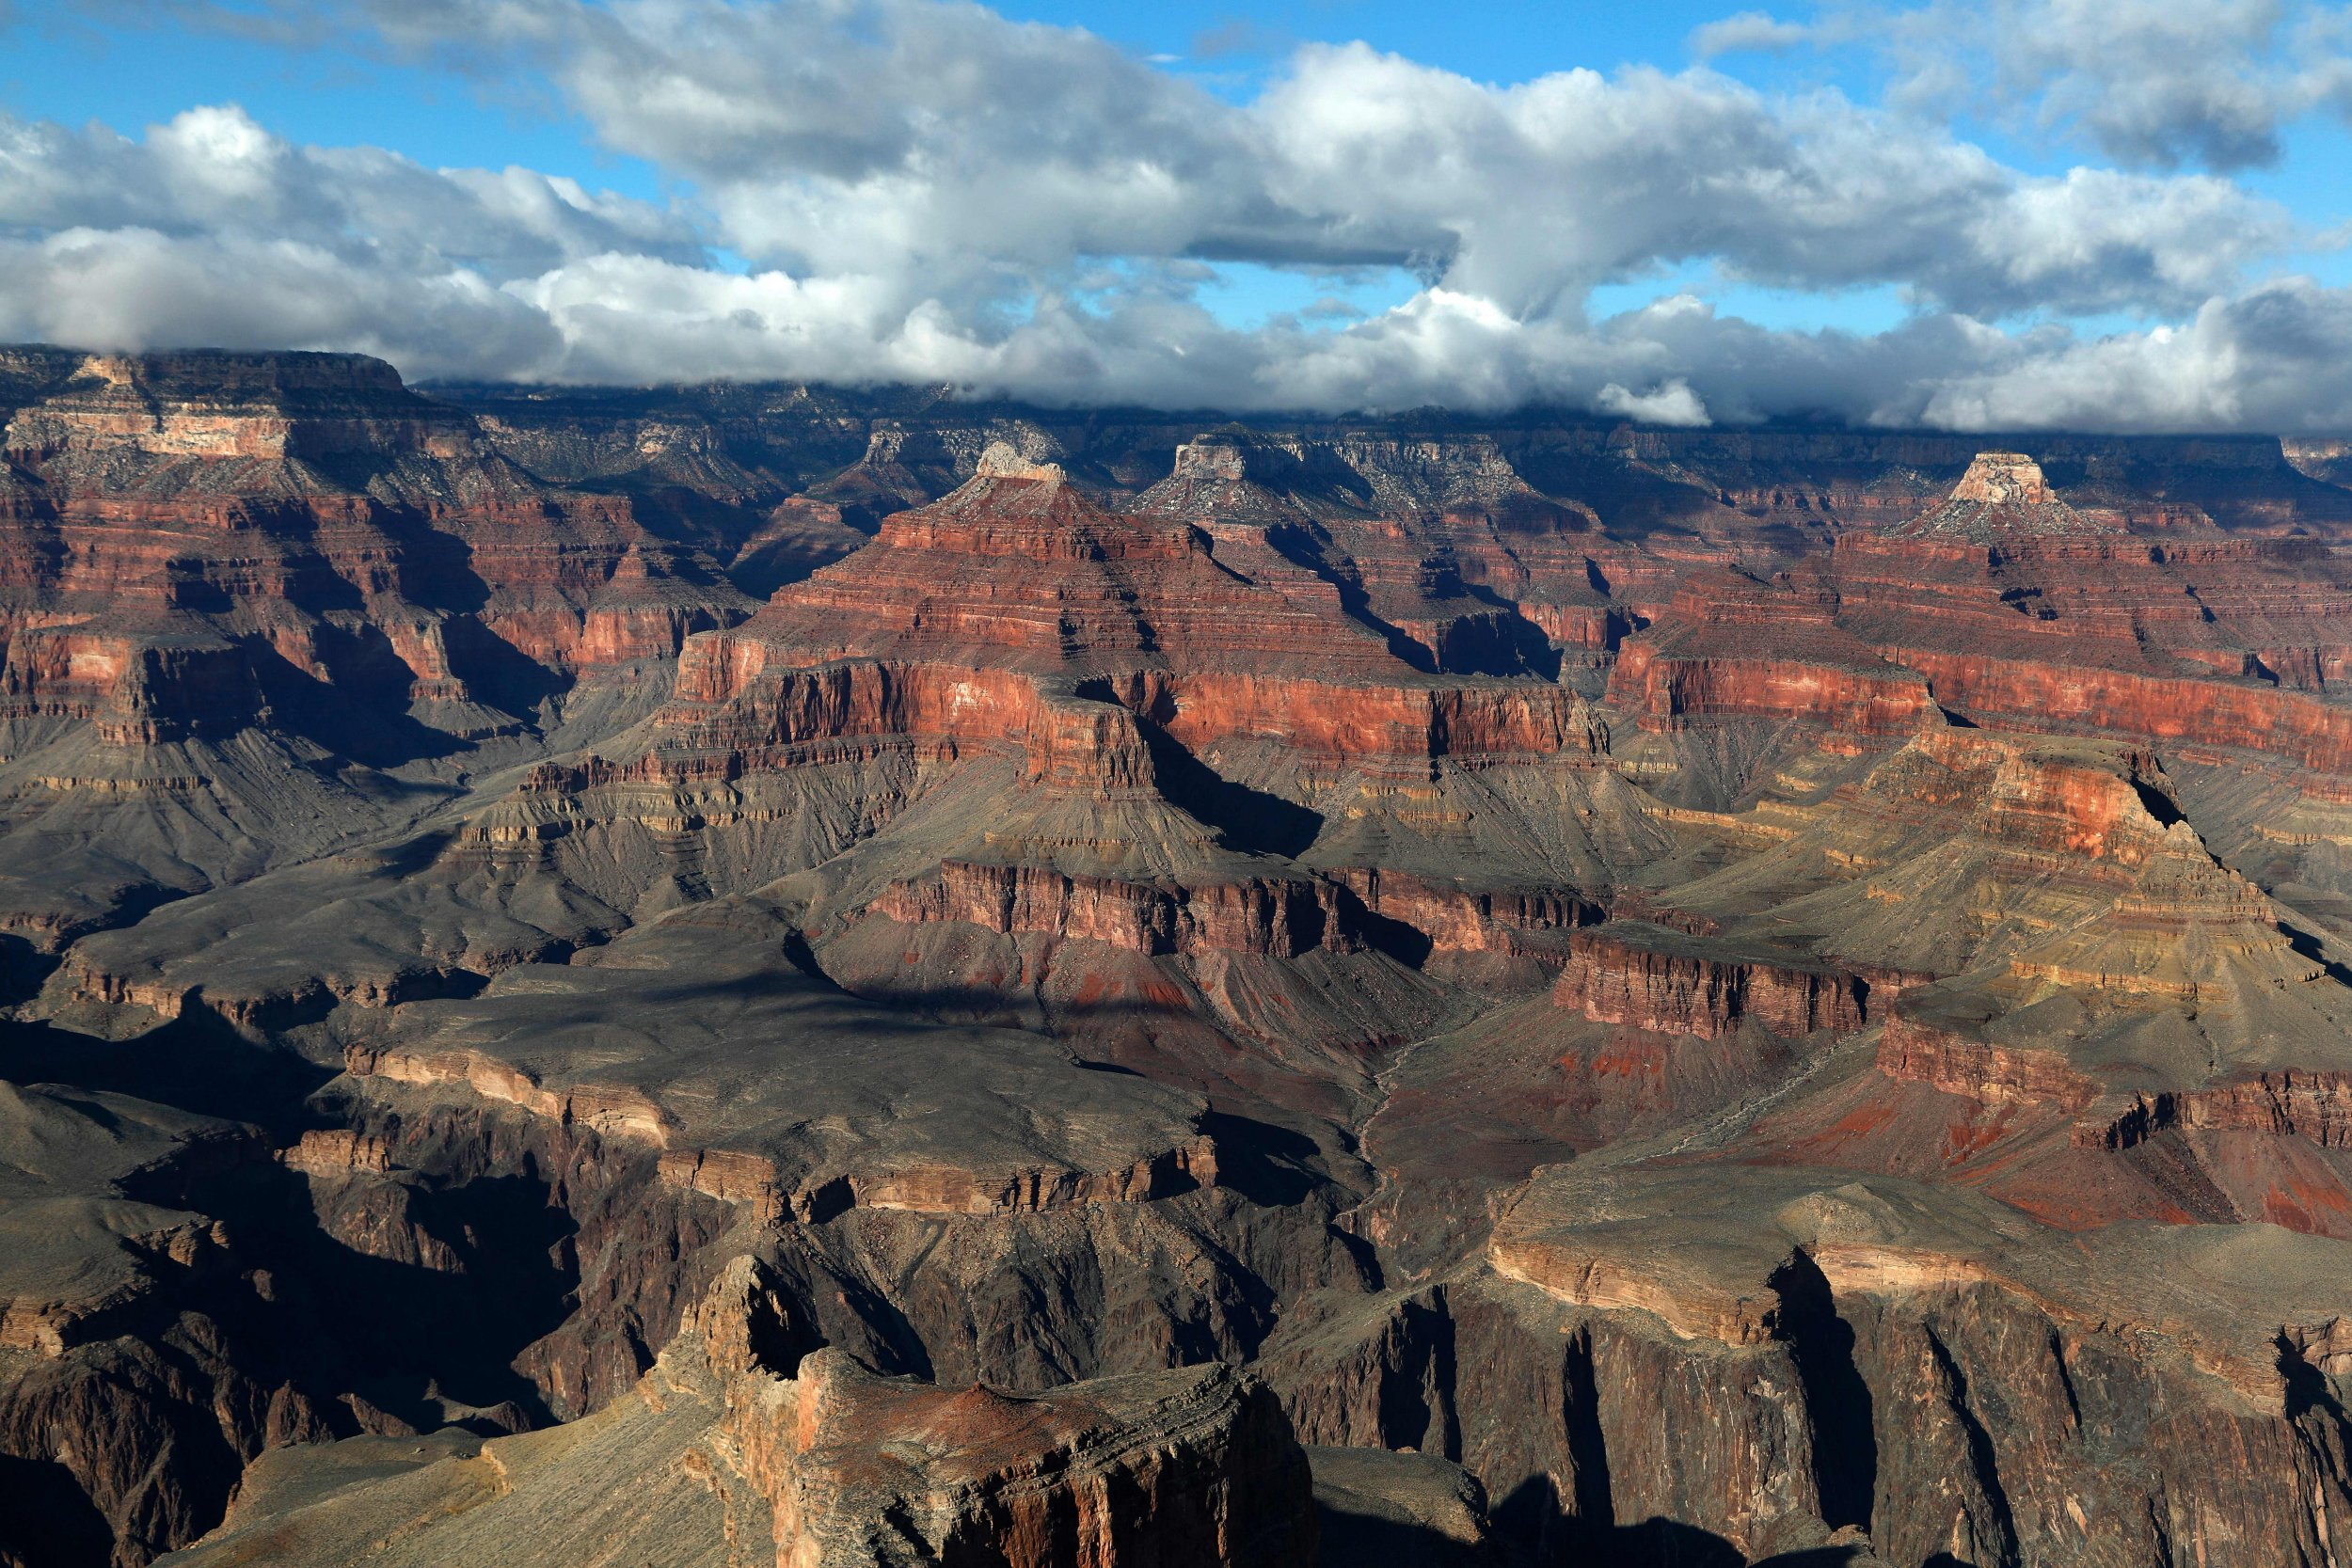 Why Do We Need to Mine Uranium in the Grand Canyon? Underground Mining Images